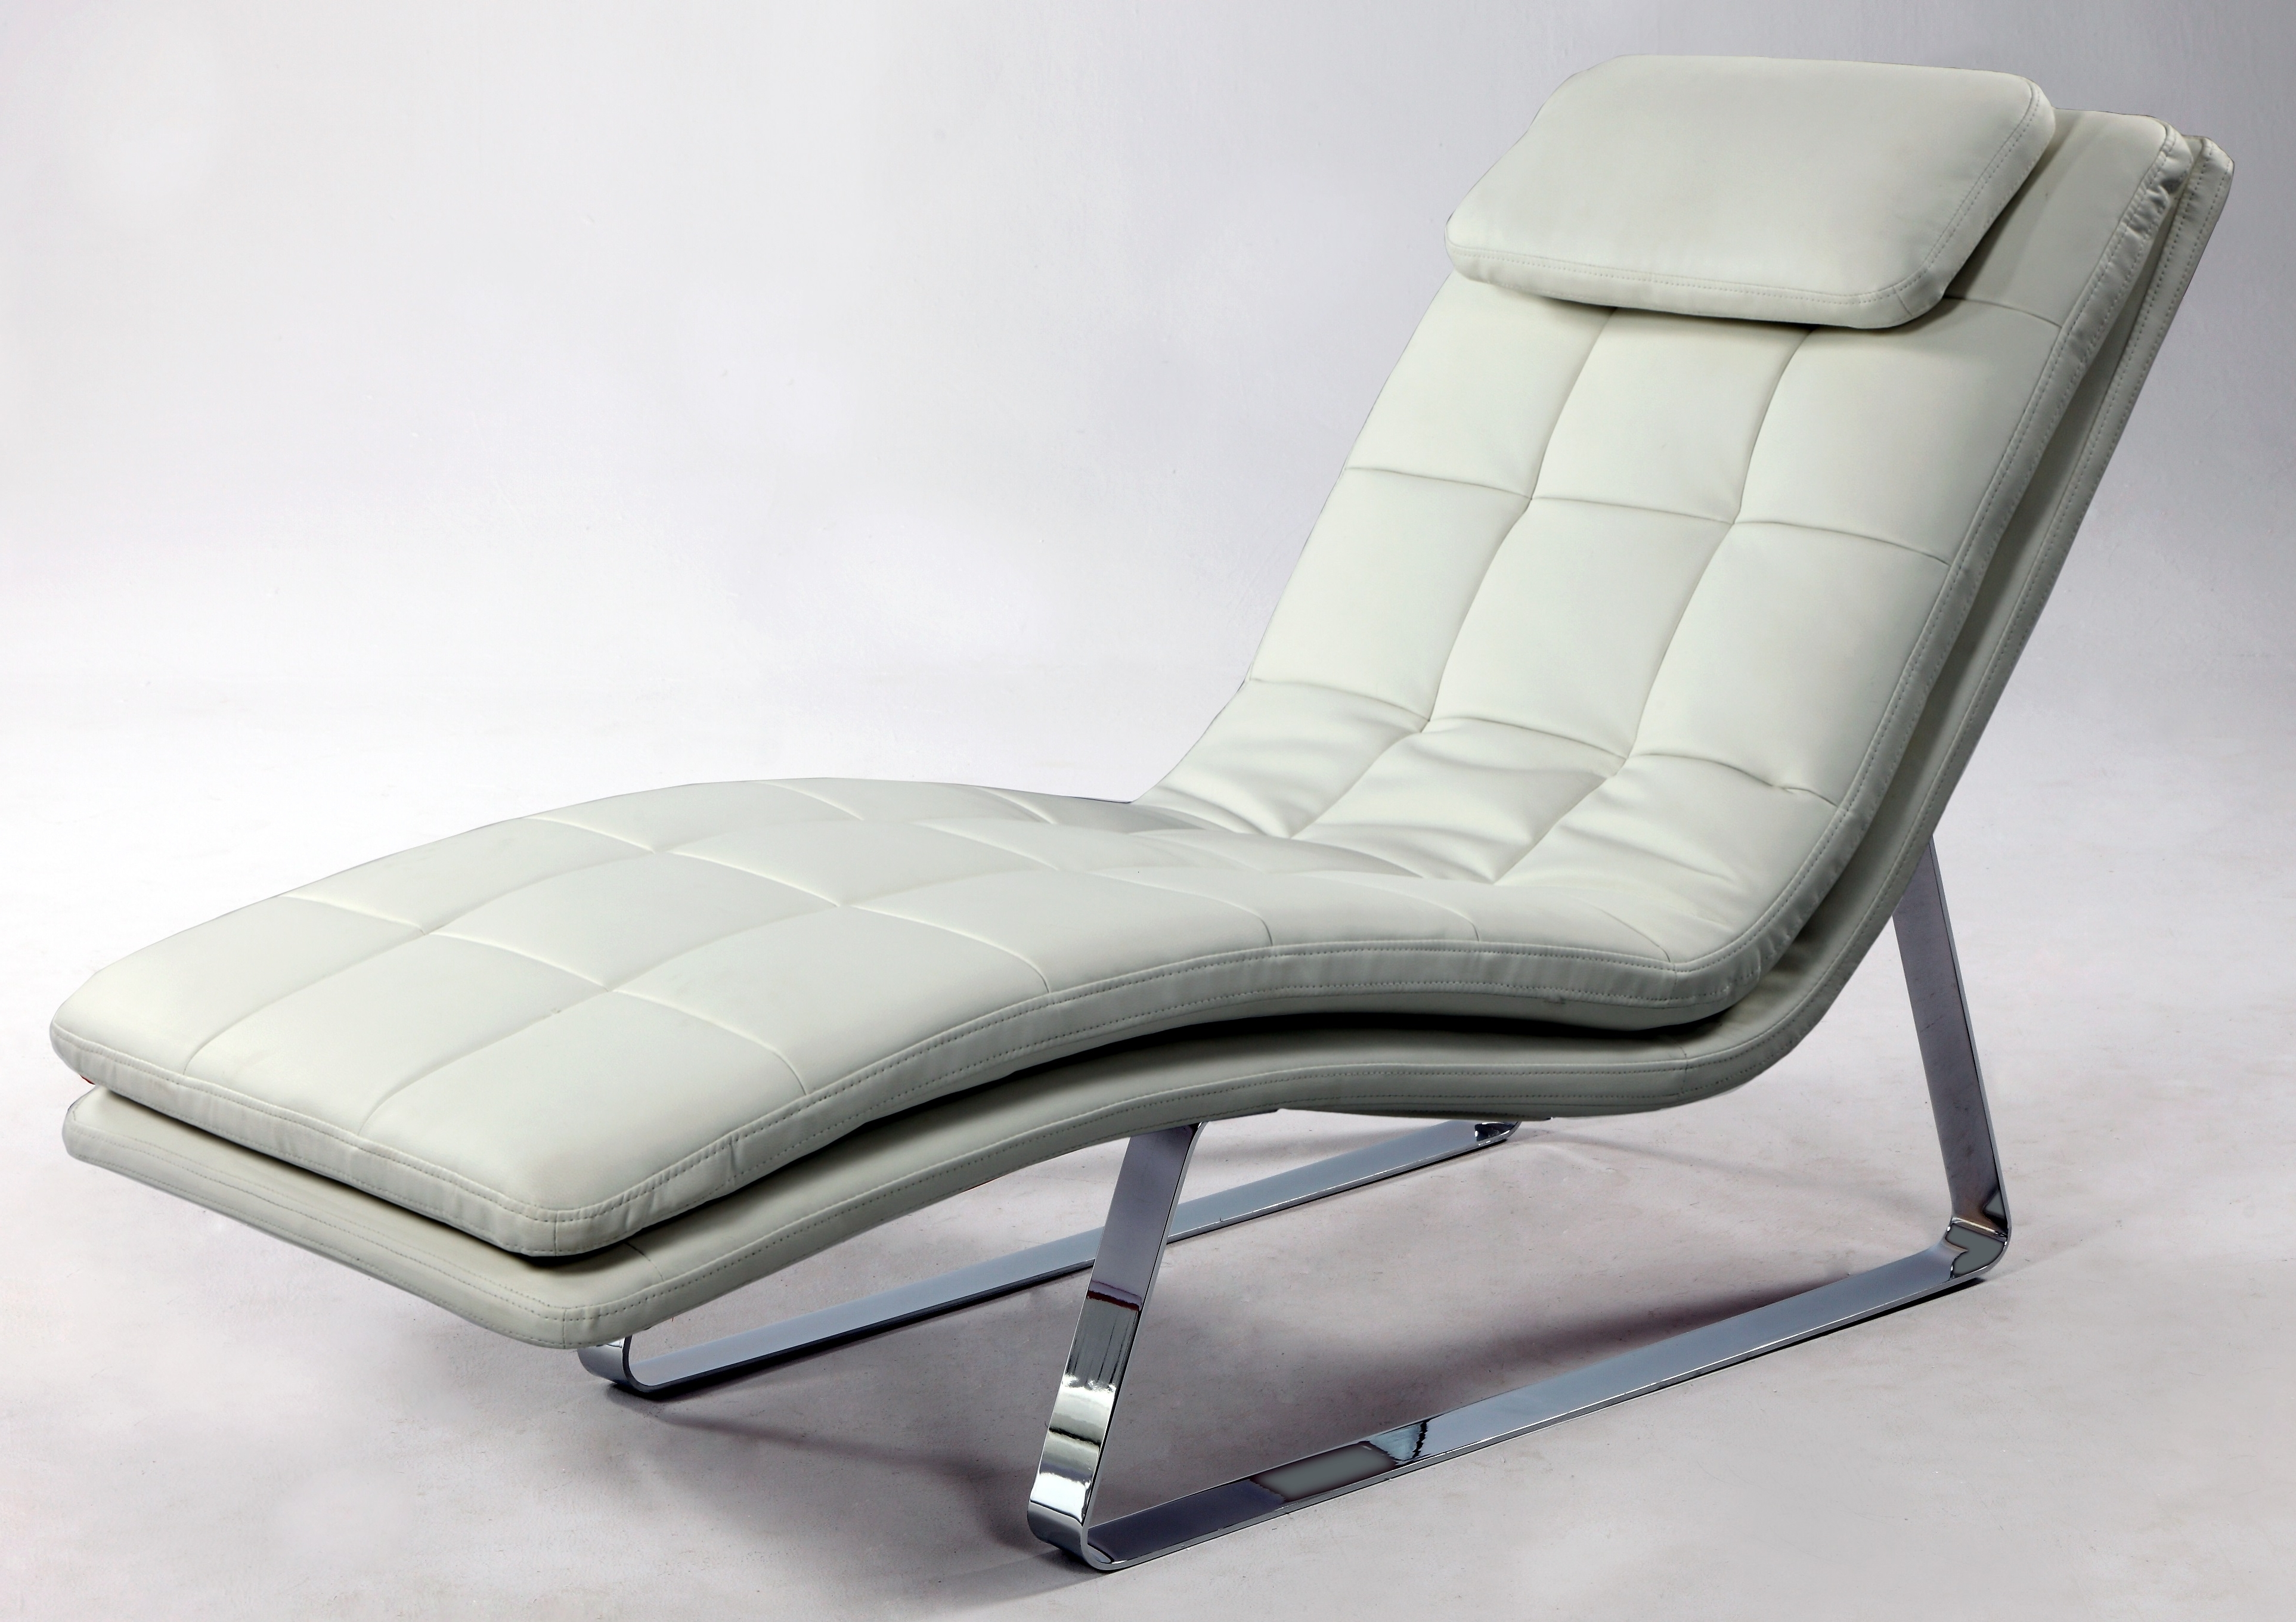 Most Recently Released White Chaises For Full Bonded Leather Tufted Chaise Lounge With Chrome Legs New York (View 3 of 15)